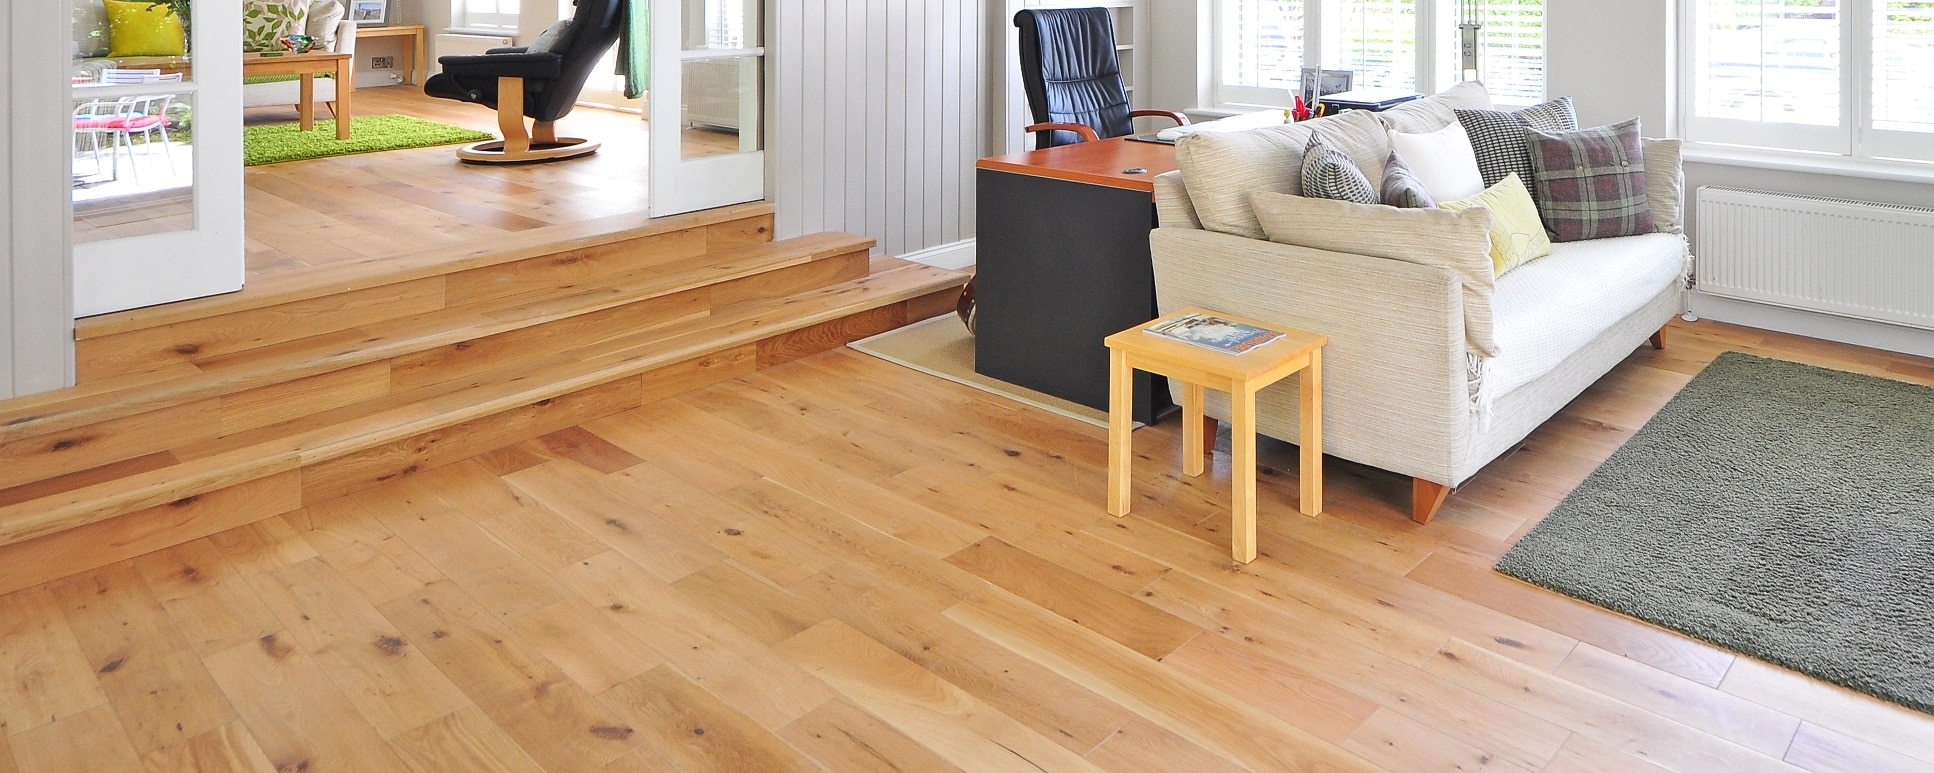 timber flooring in room